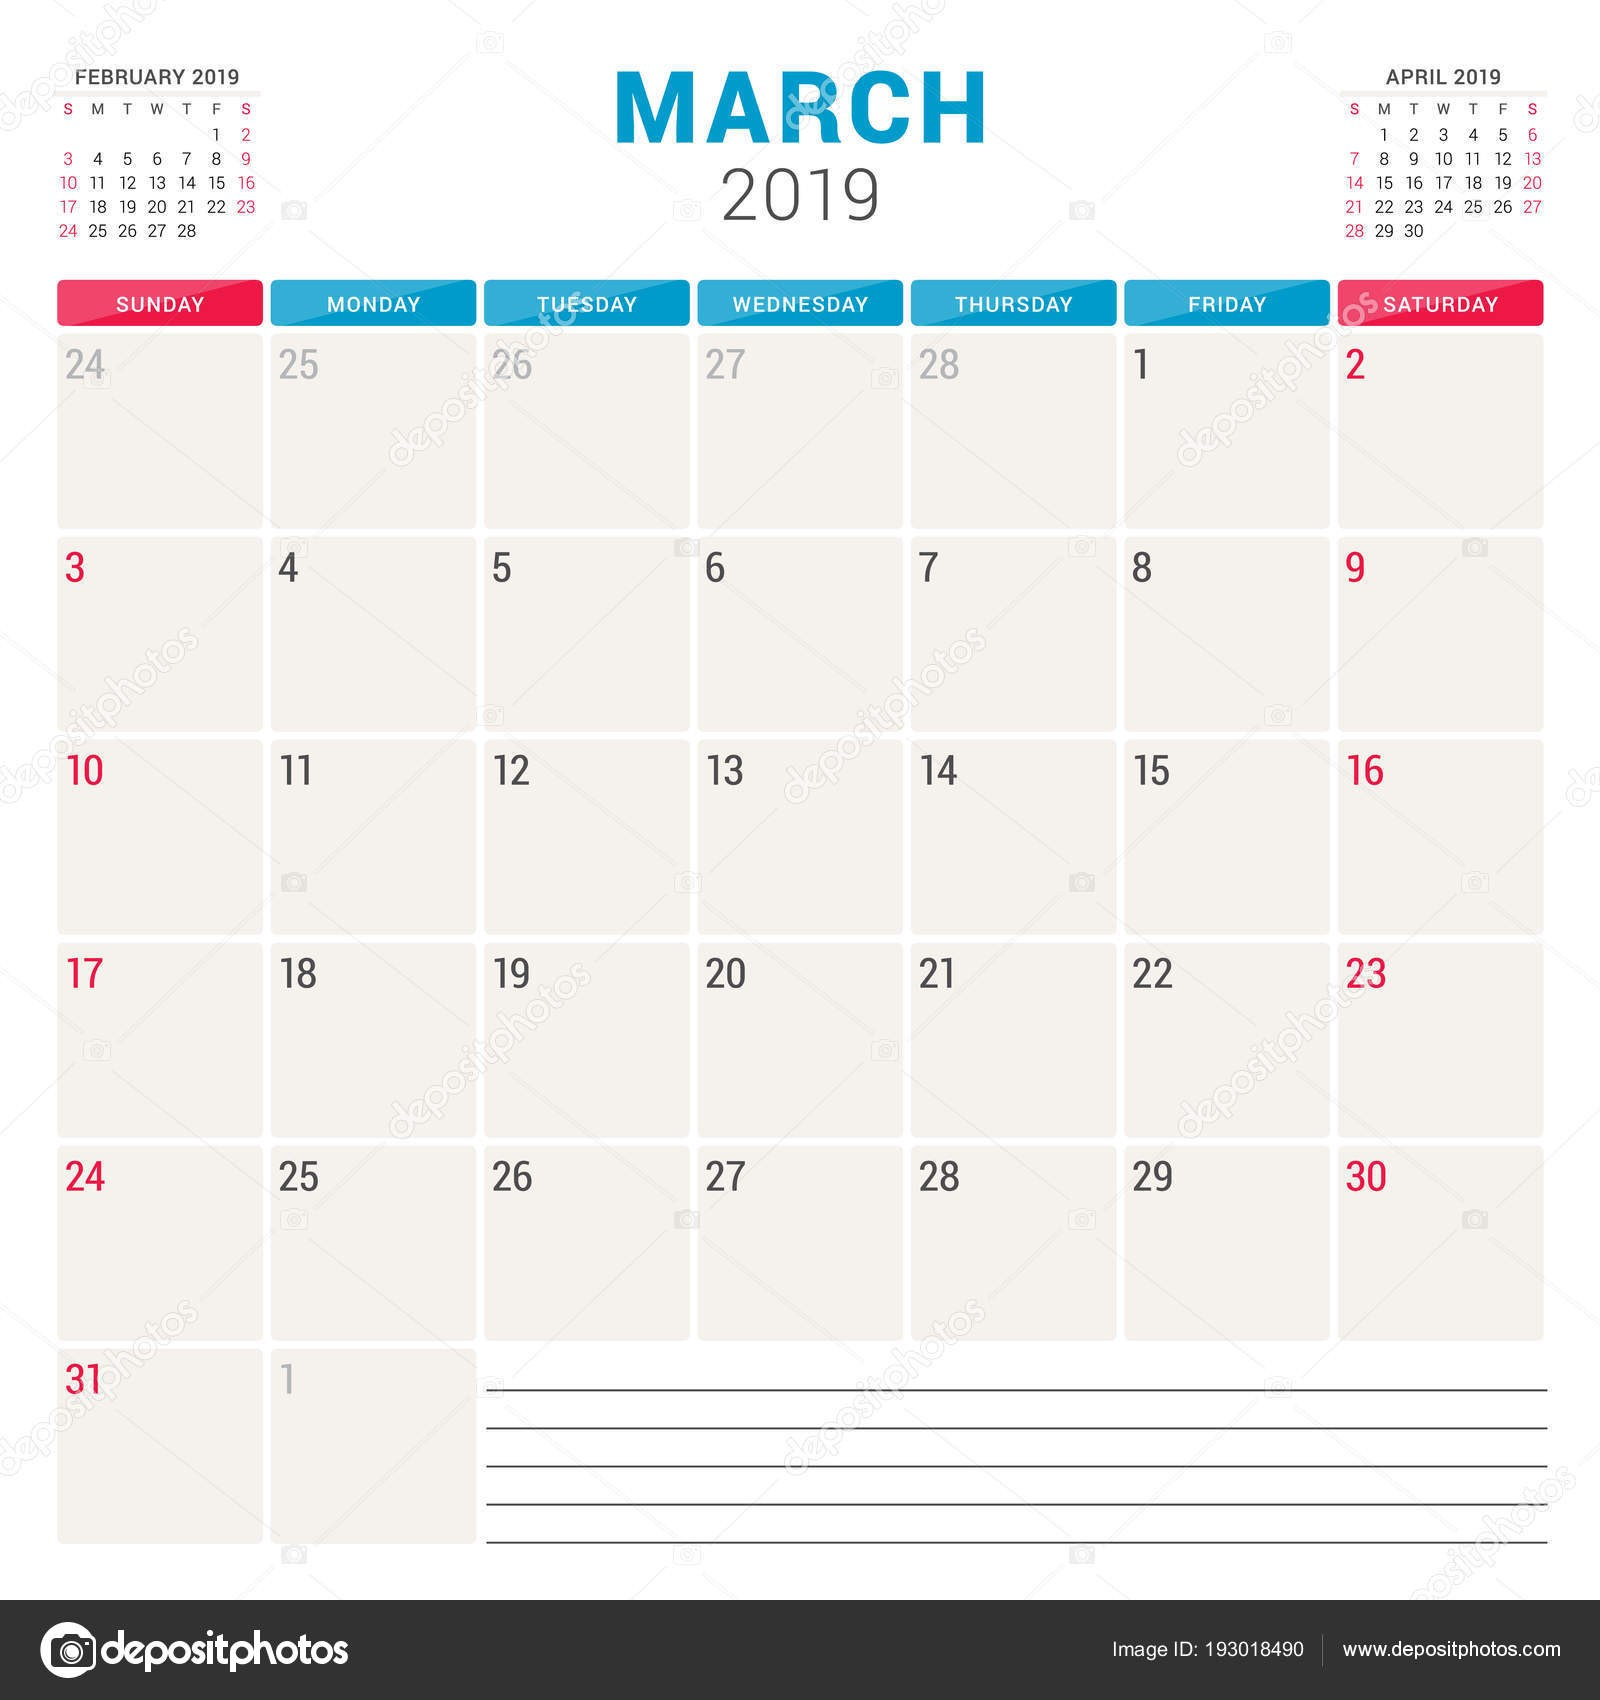 March Calendar 2019 Más Caliente Calendar Planner for March 2019 Week Starts On Sunday Printable Of March Calendar 2019 Más Populares February March Calendar 2019 2018 Printable Calendar Store